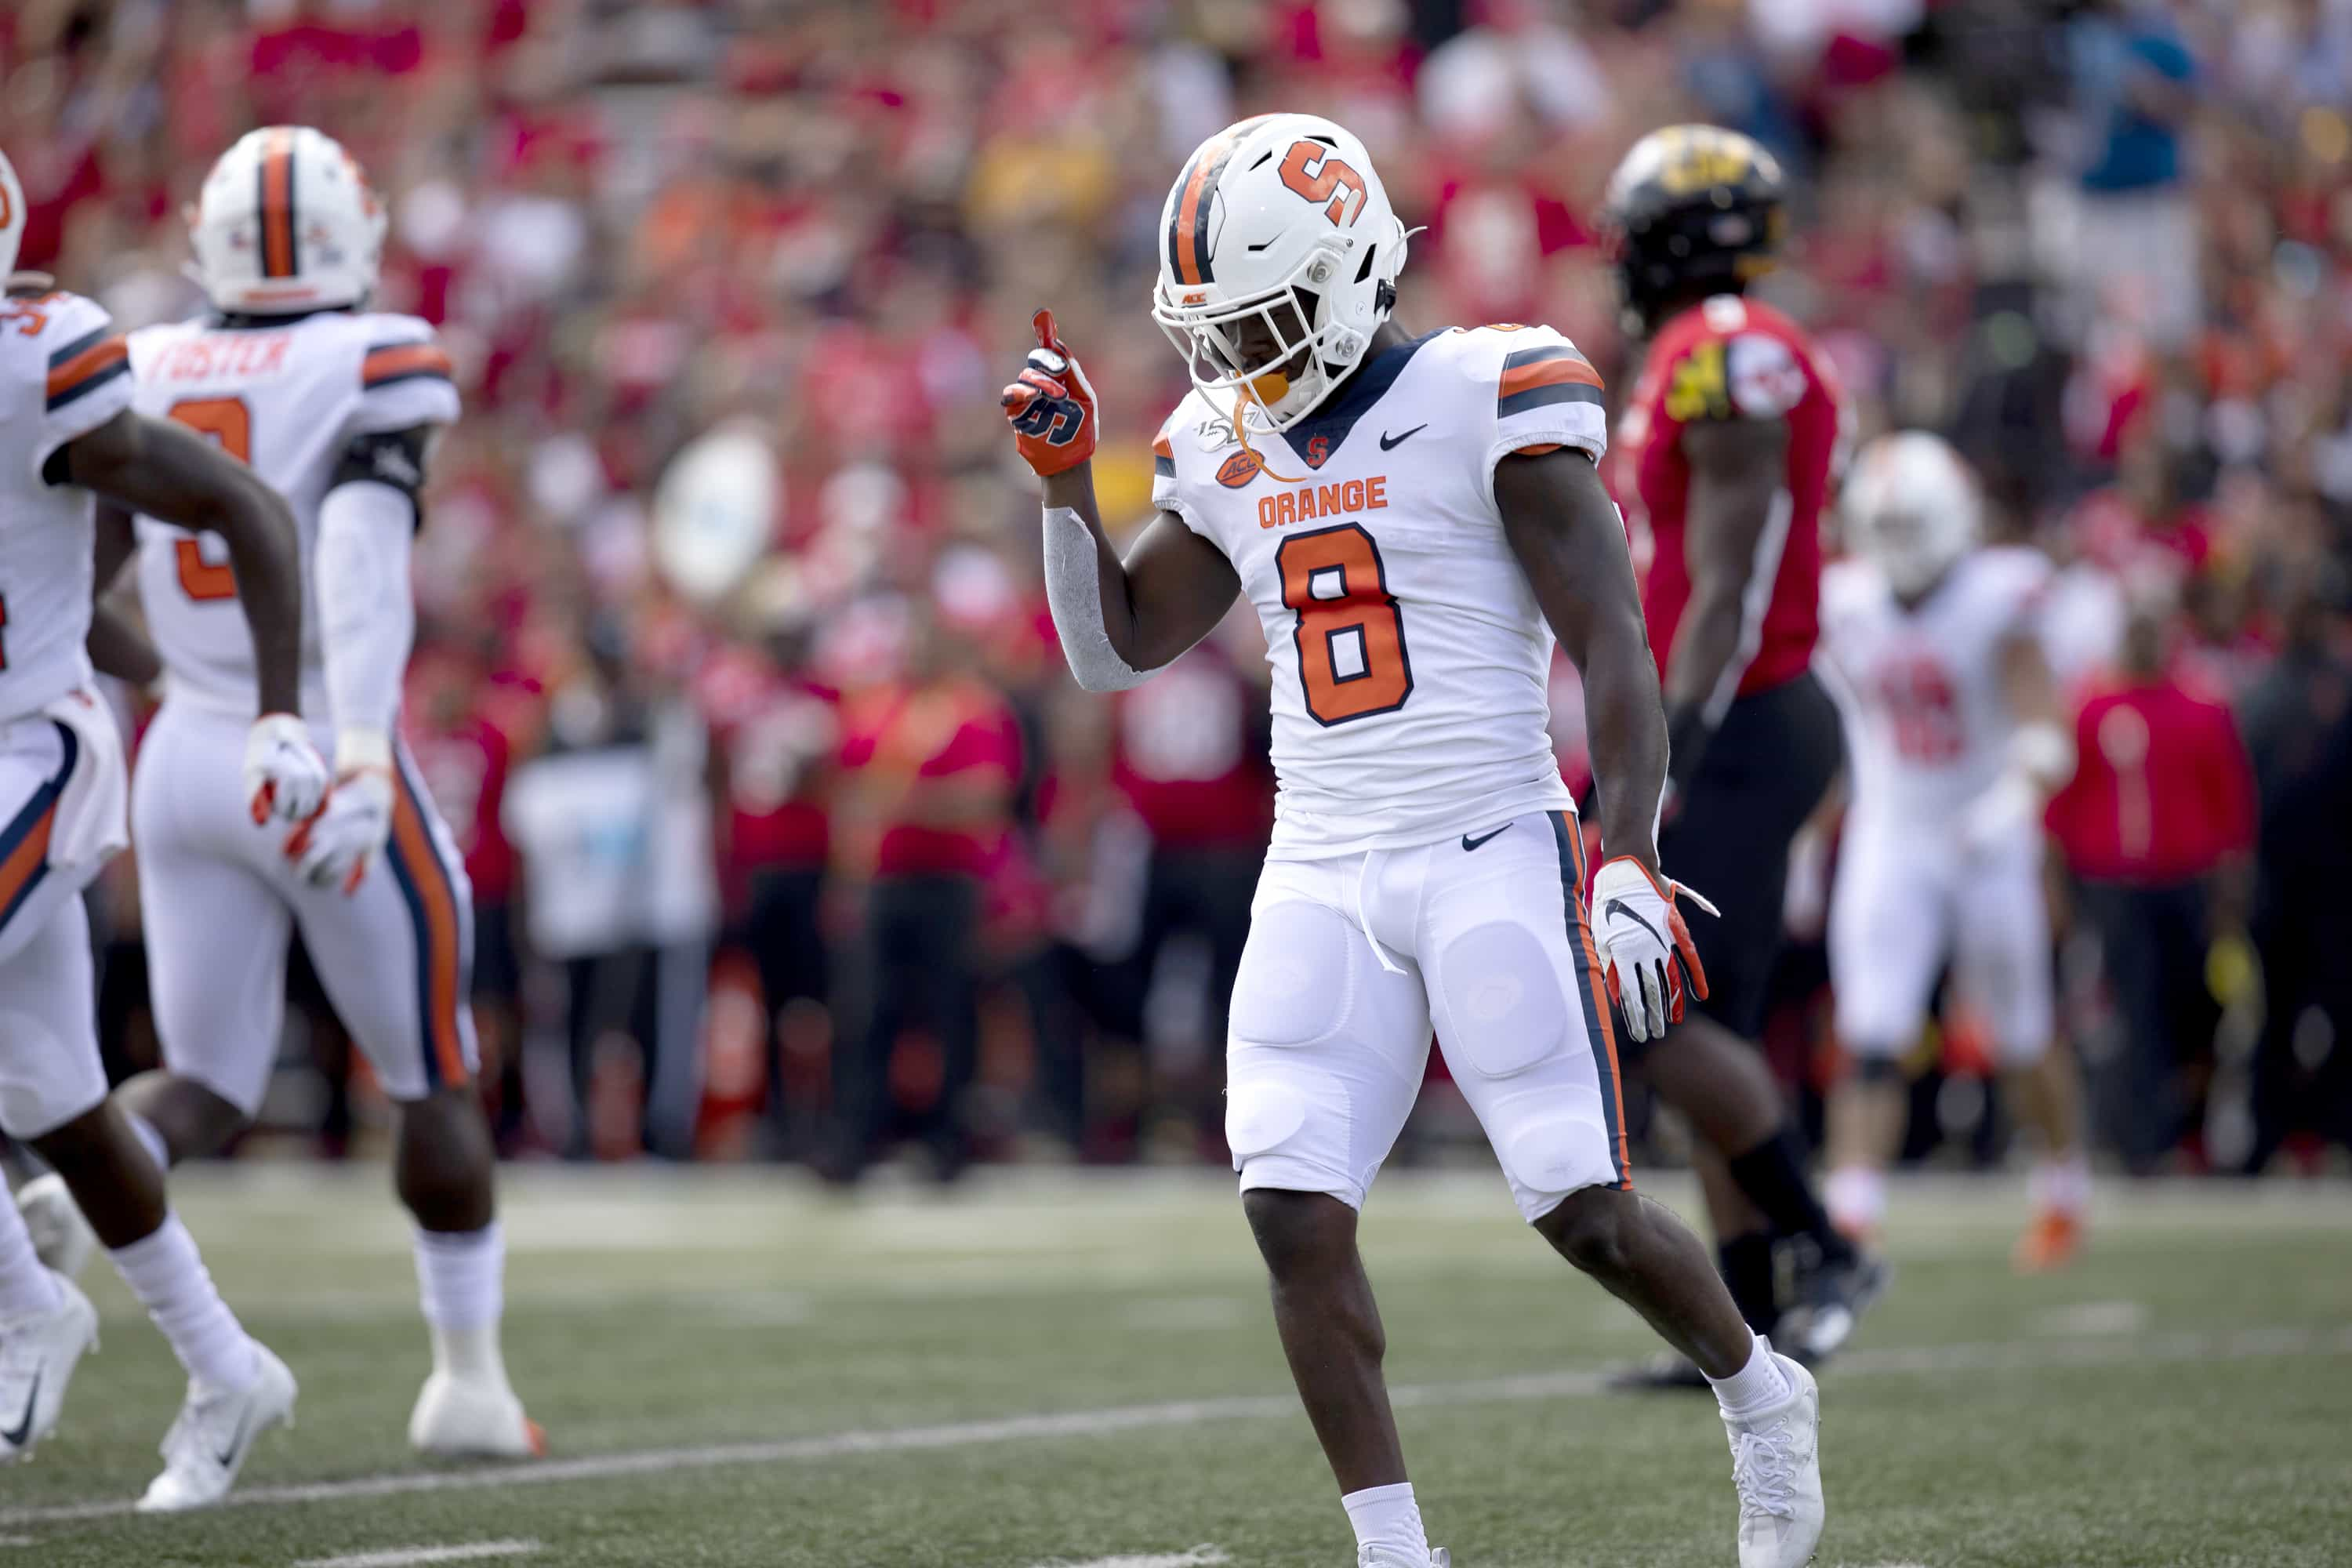 Syracuse defensive back Antwan Cordy celebrates a play against Maryland.